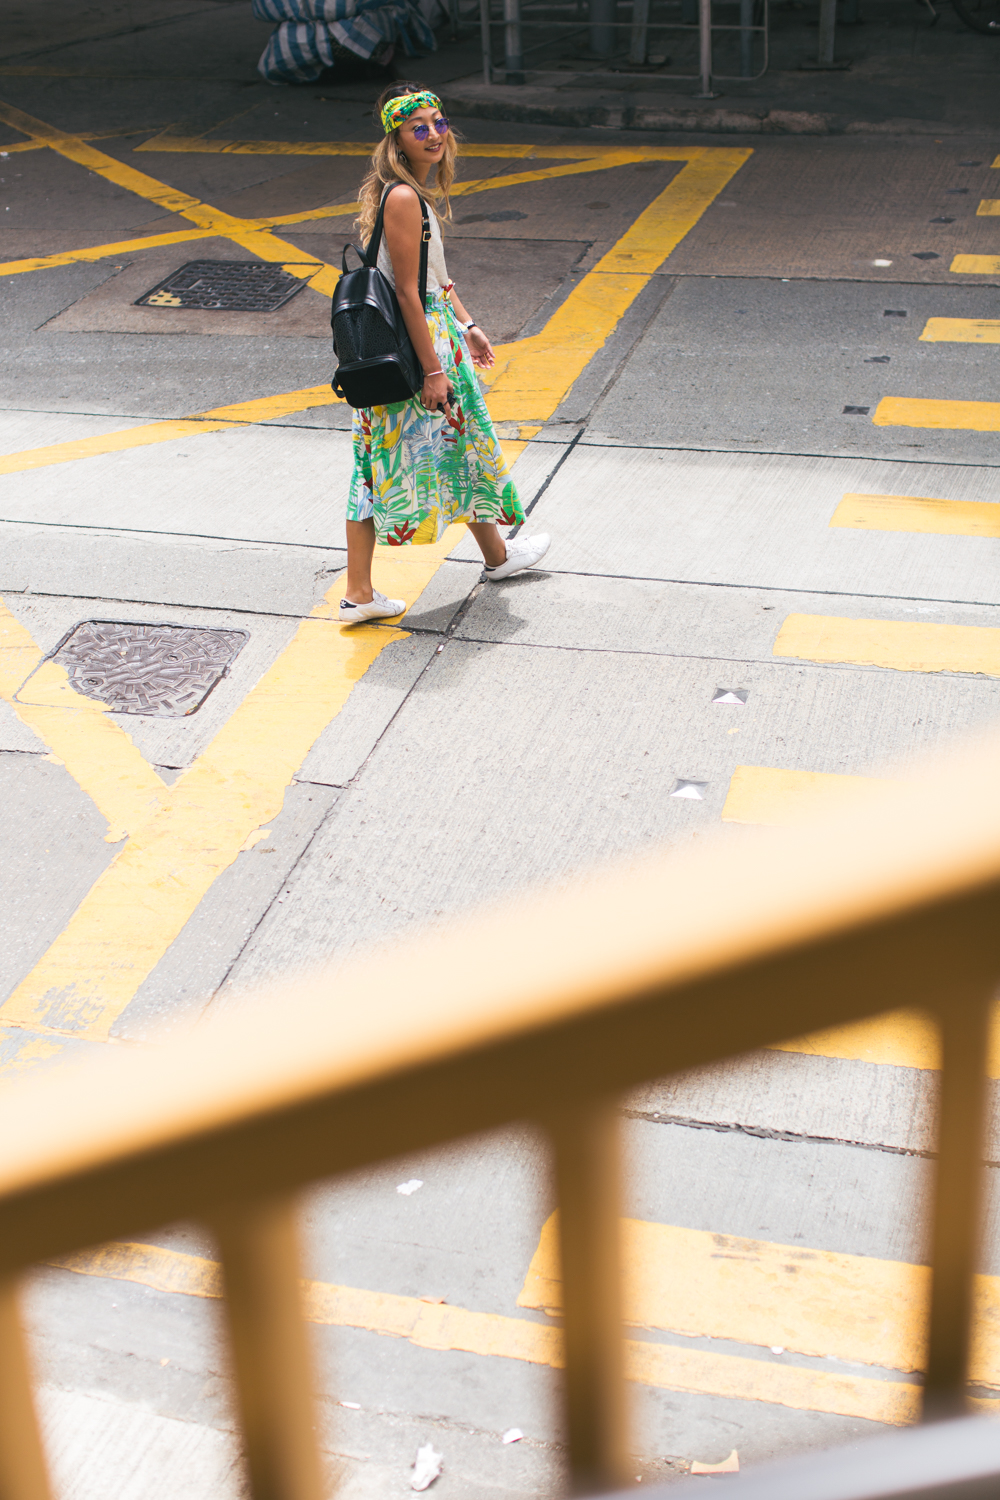 Hong Kong road crossing | fashion and lifestyle photoshoot